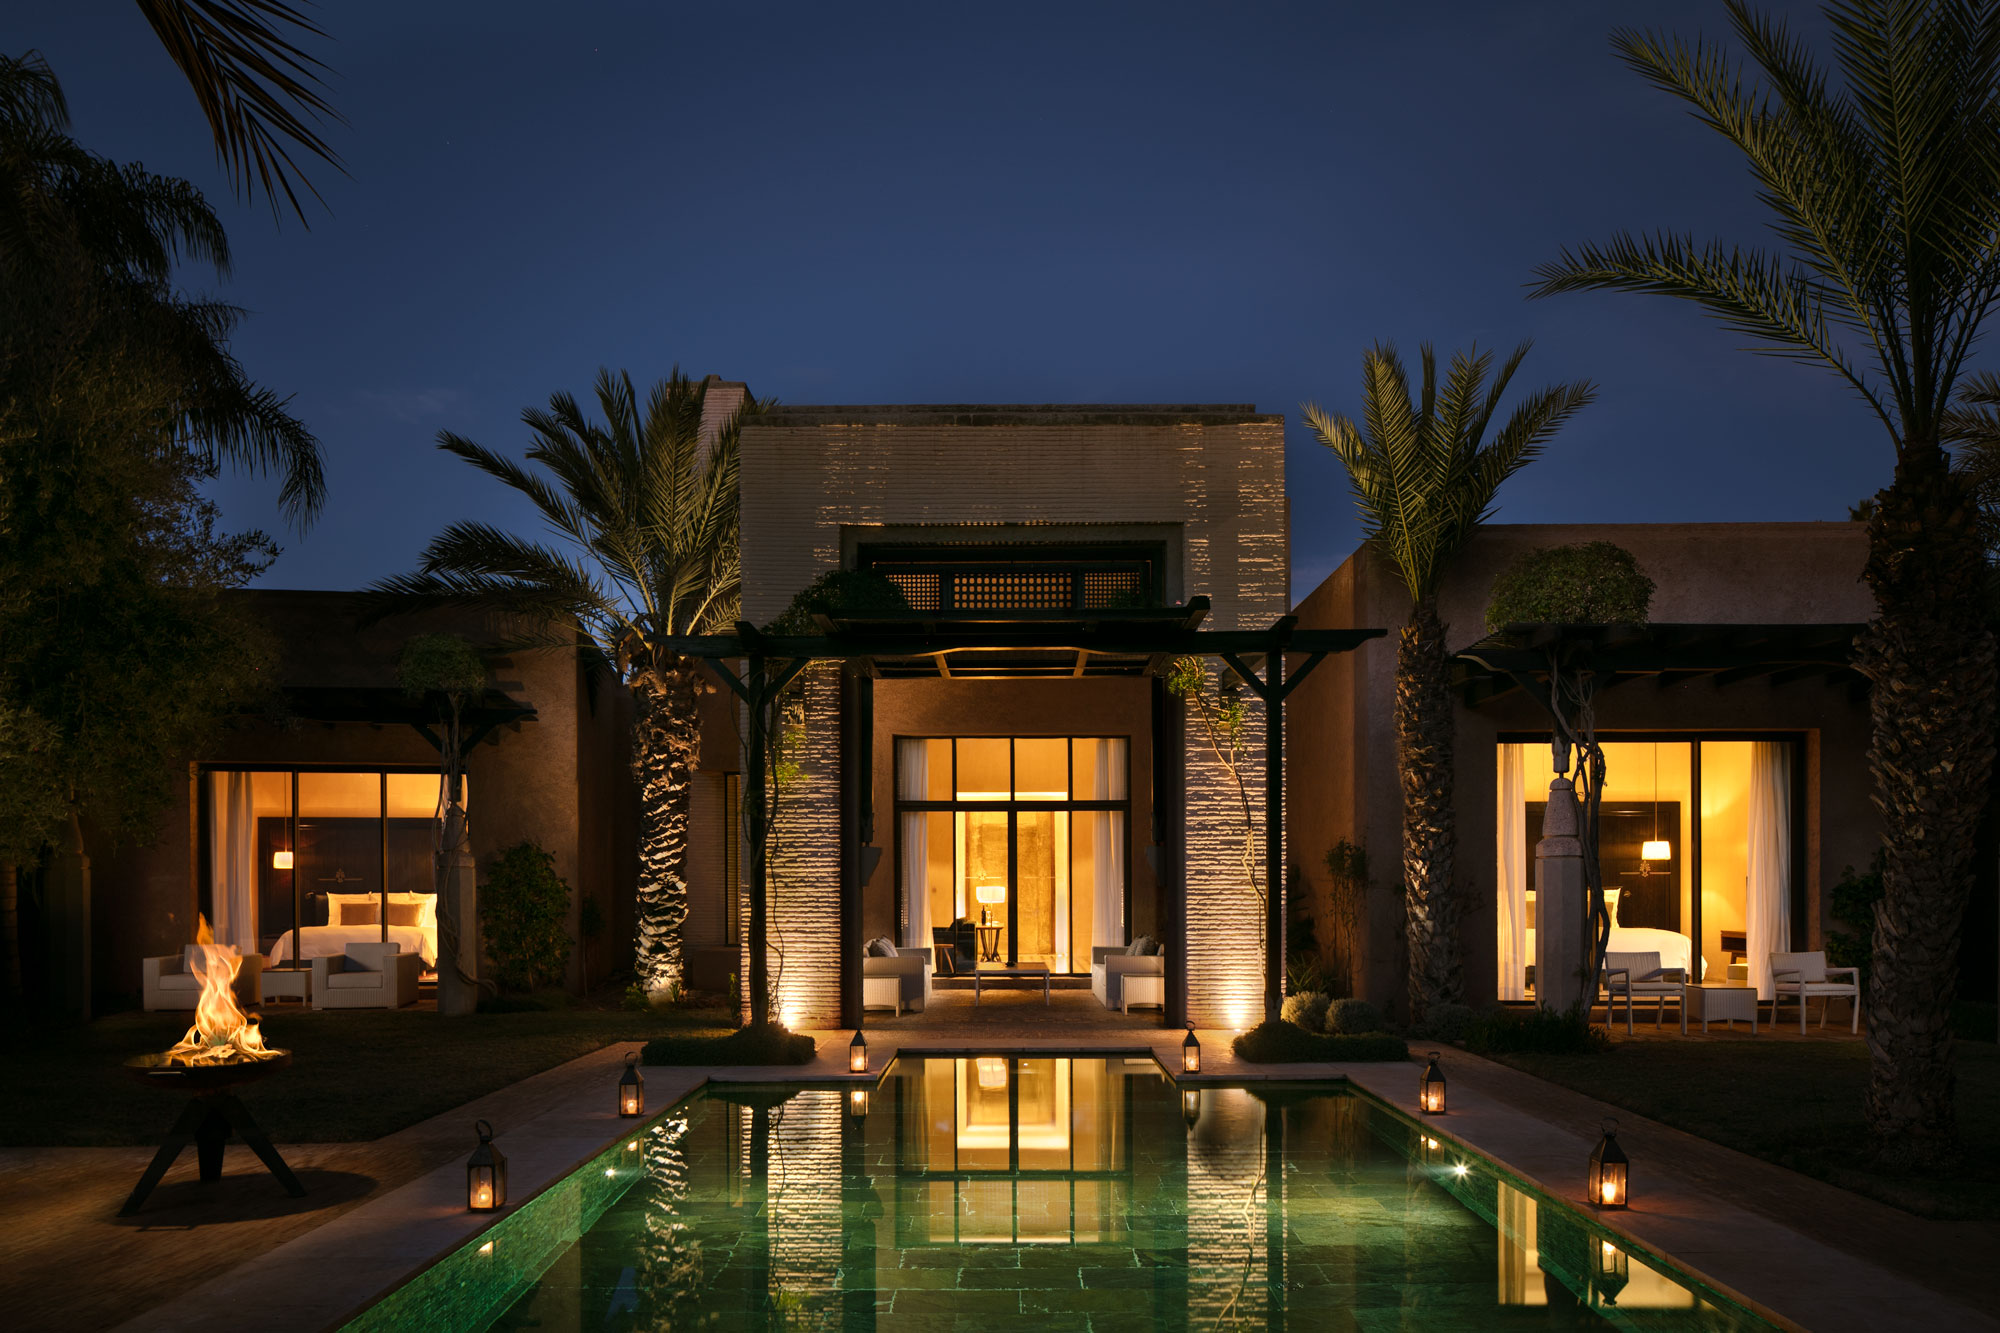 Fairmont-Royal-Palm-Marrakech-Villa-by-Adrian-Kilchherr-Hotel-Resort-Photographer-Africa